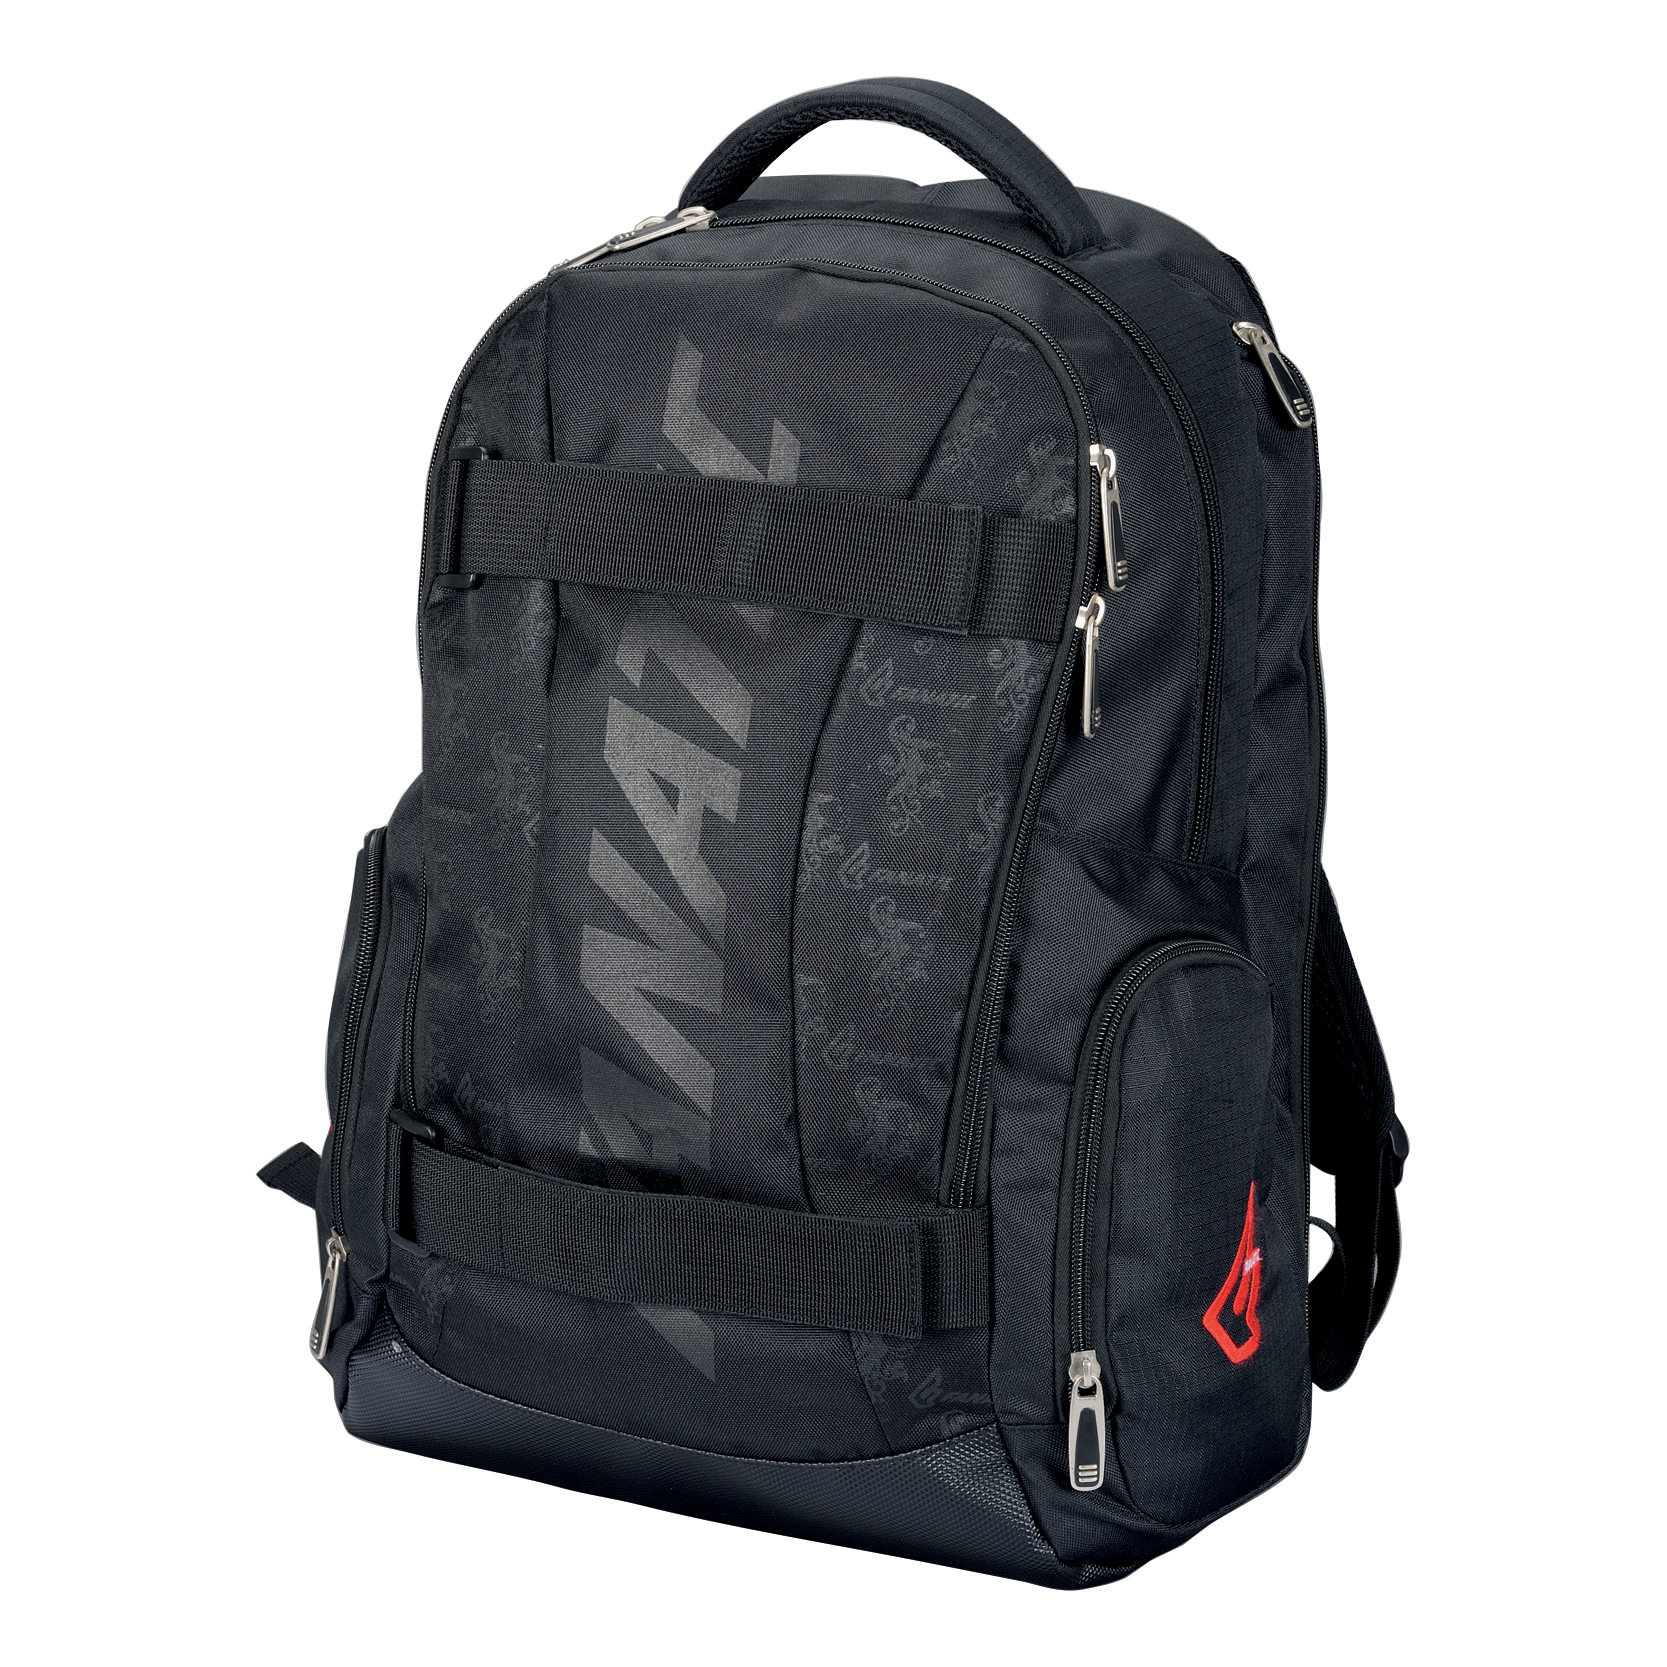 Bags & Cases Lightpak Hawk Laptop Backpack Padded Polyester Capacity 14in Black Ref 24603